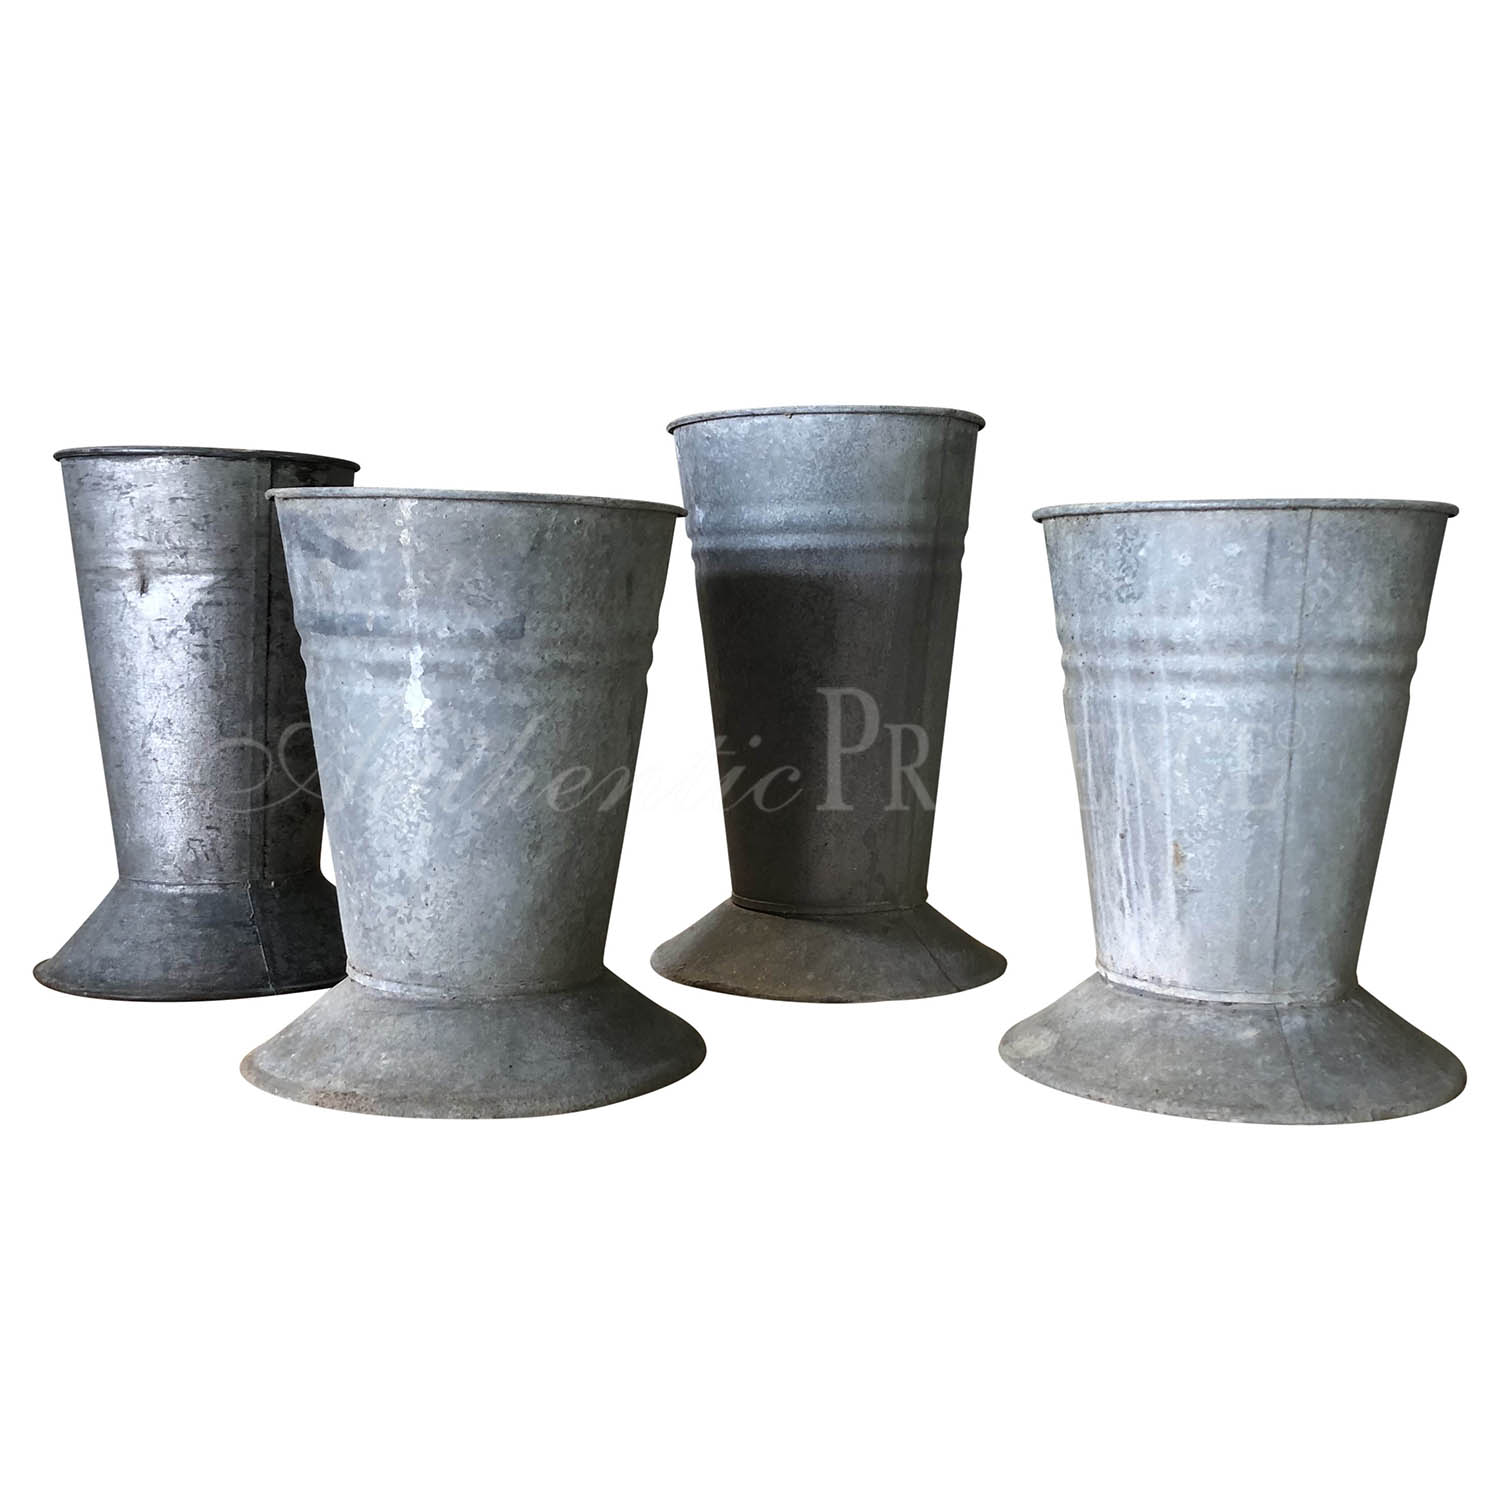 225 & Set of French Galvanized Metal Flower Pots | Authentic Provence